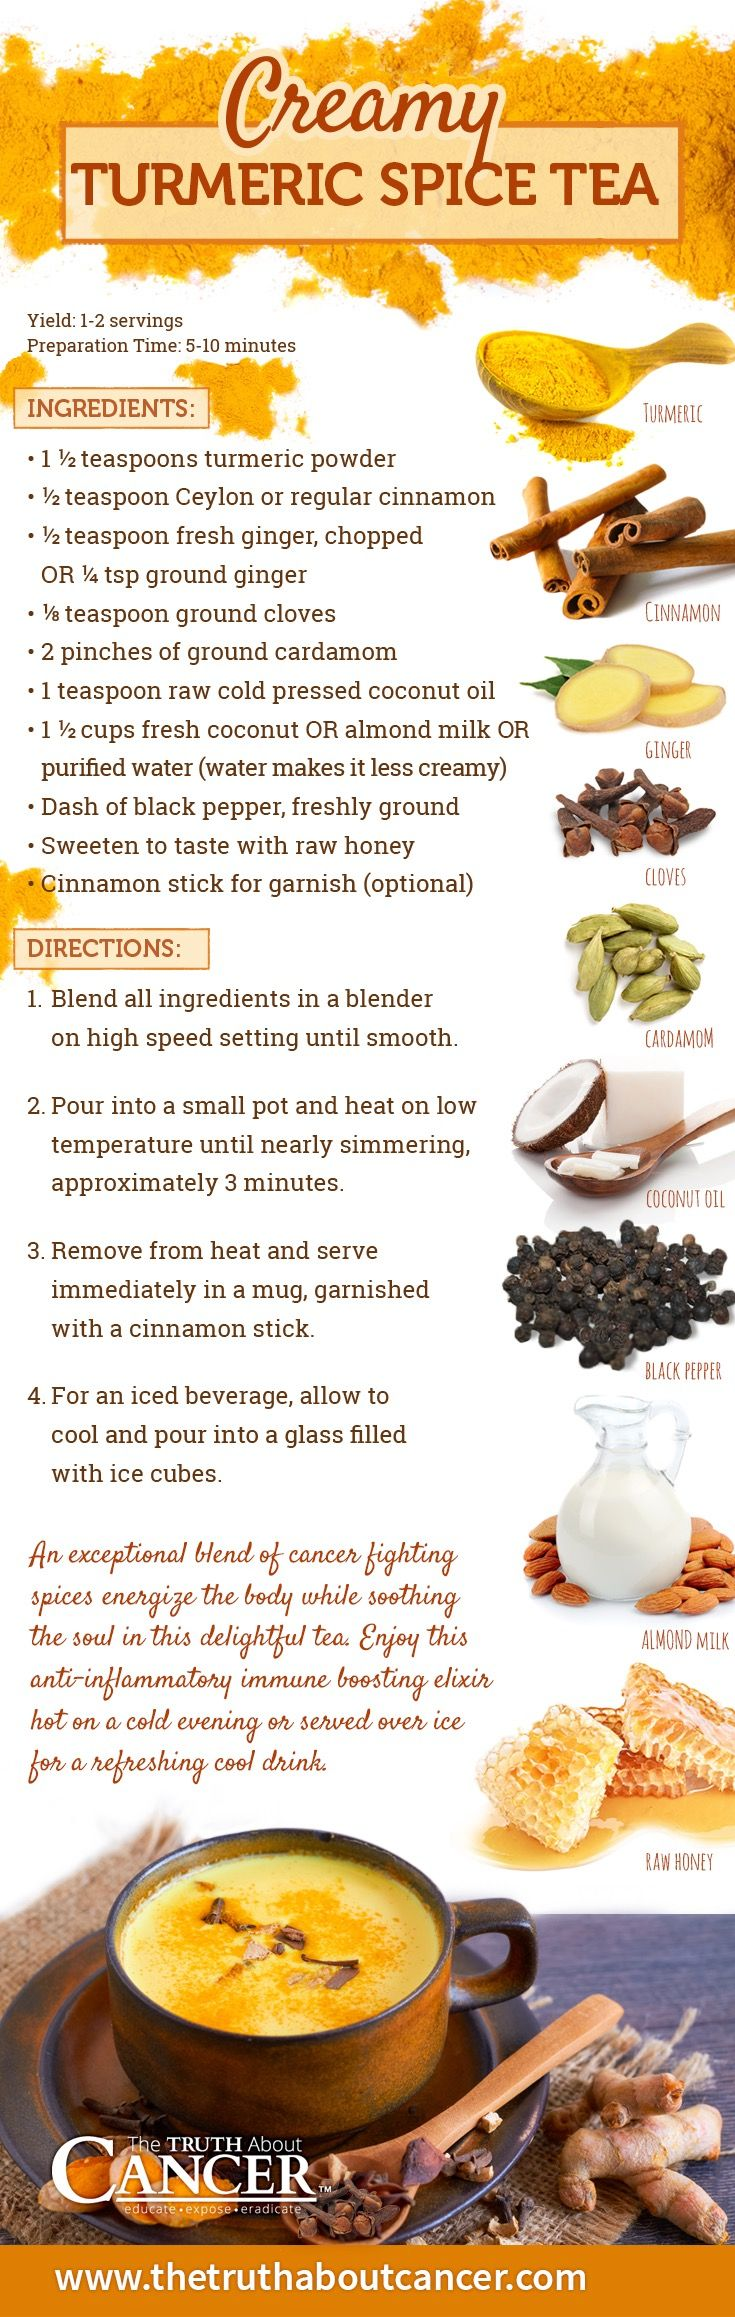 Curcumin can play a key role in the prevention and treatment of chronic inflammation diseases. For more information about the recipe to make Turmeric Tea which contains curcumin click on the picture.